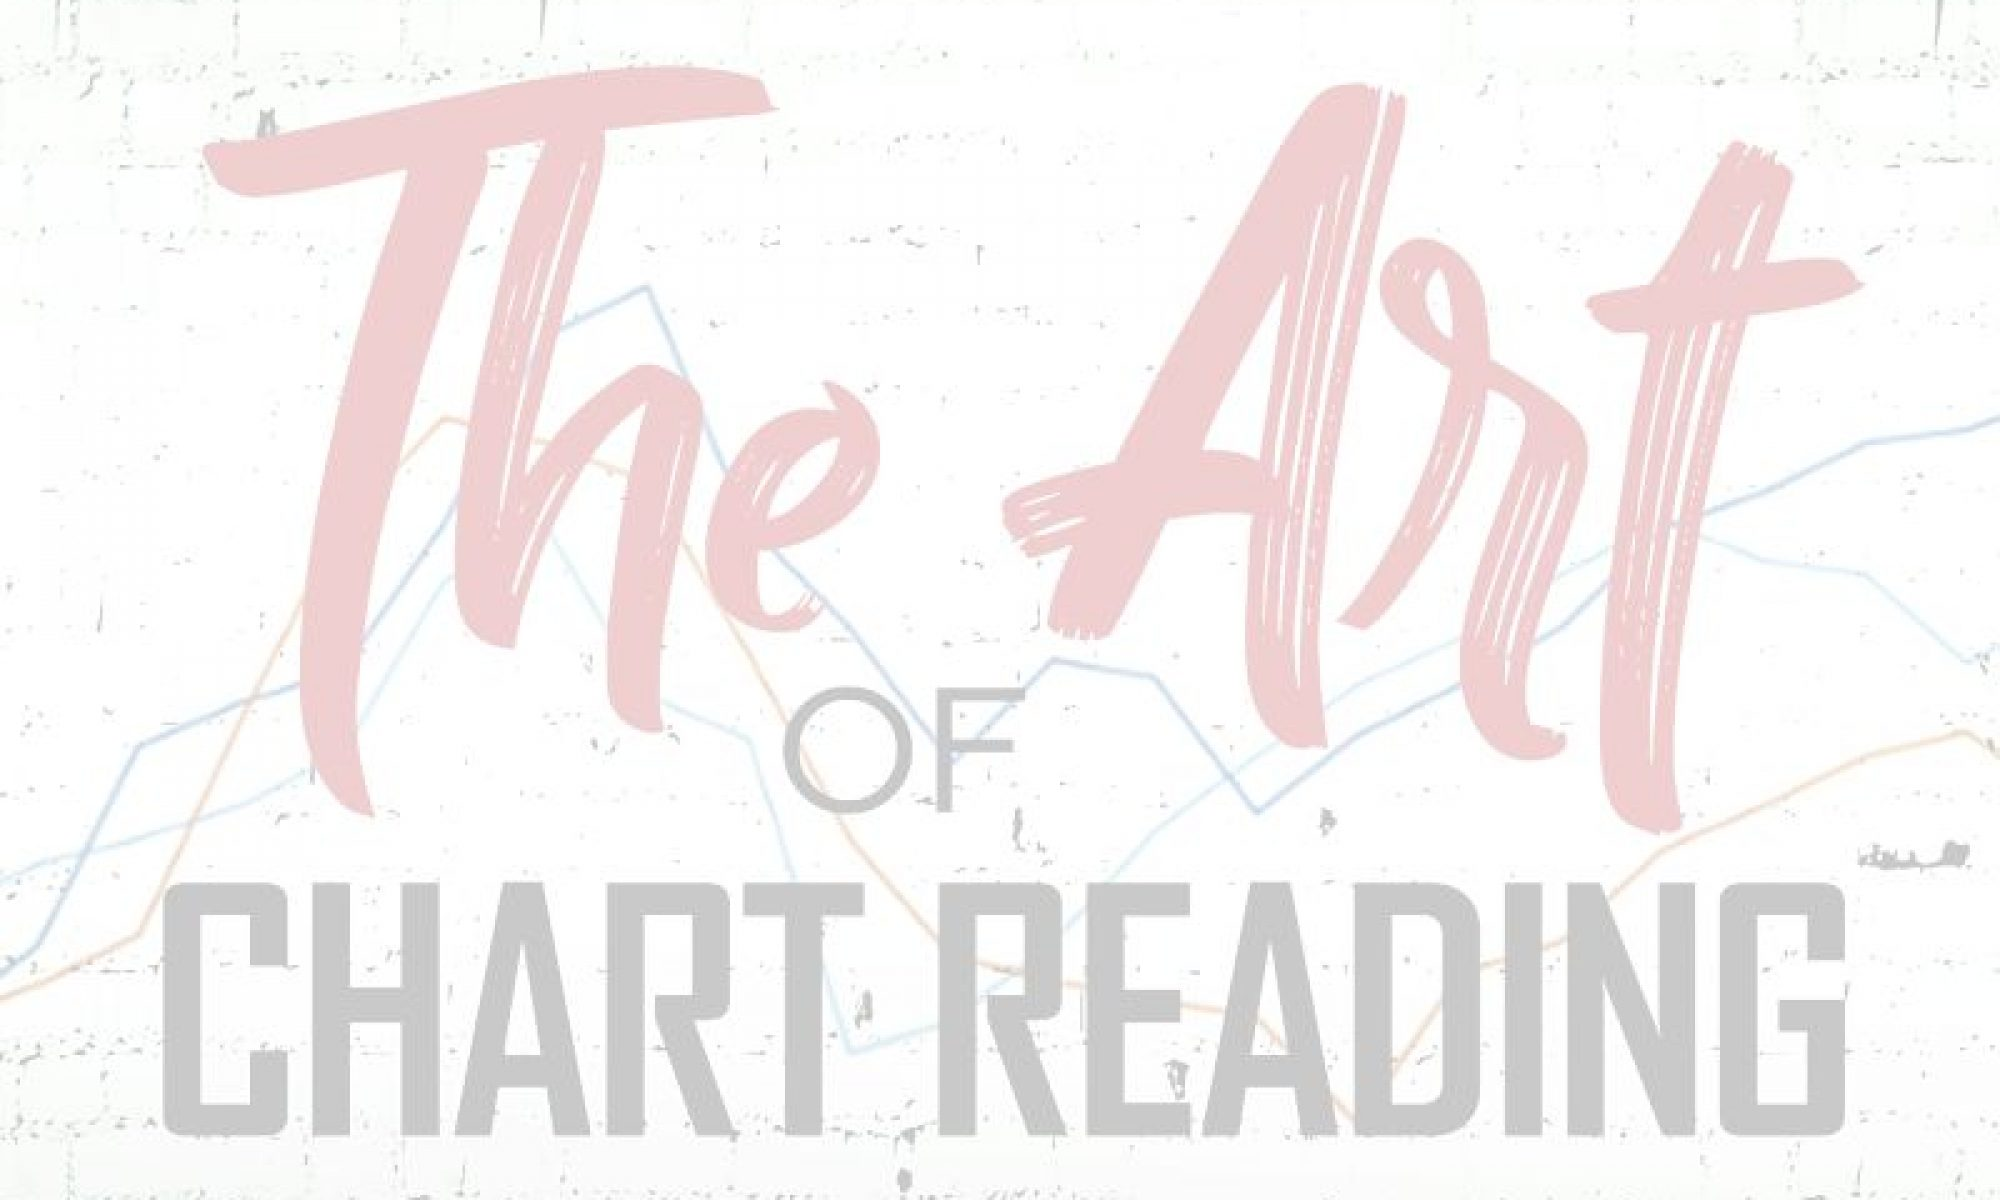 The Art of Chart Reading Online